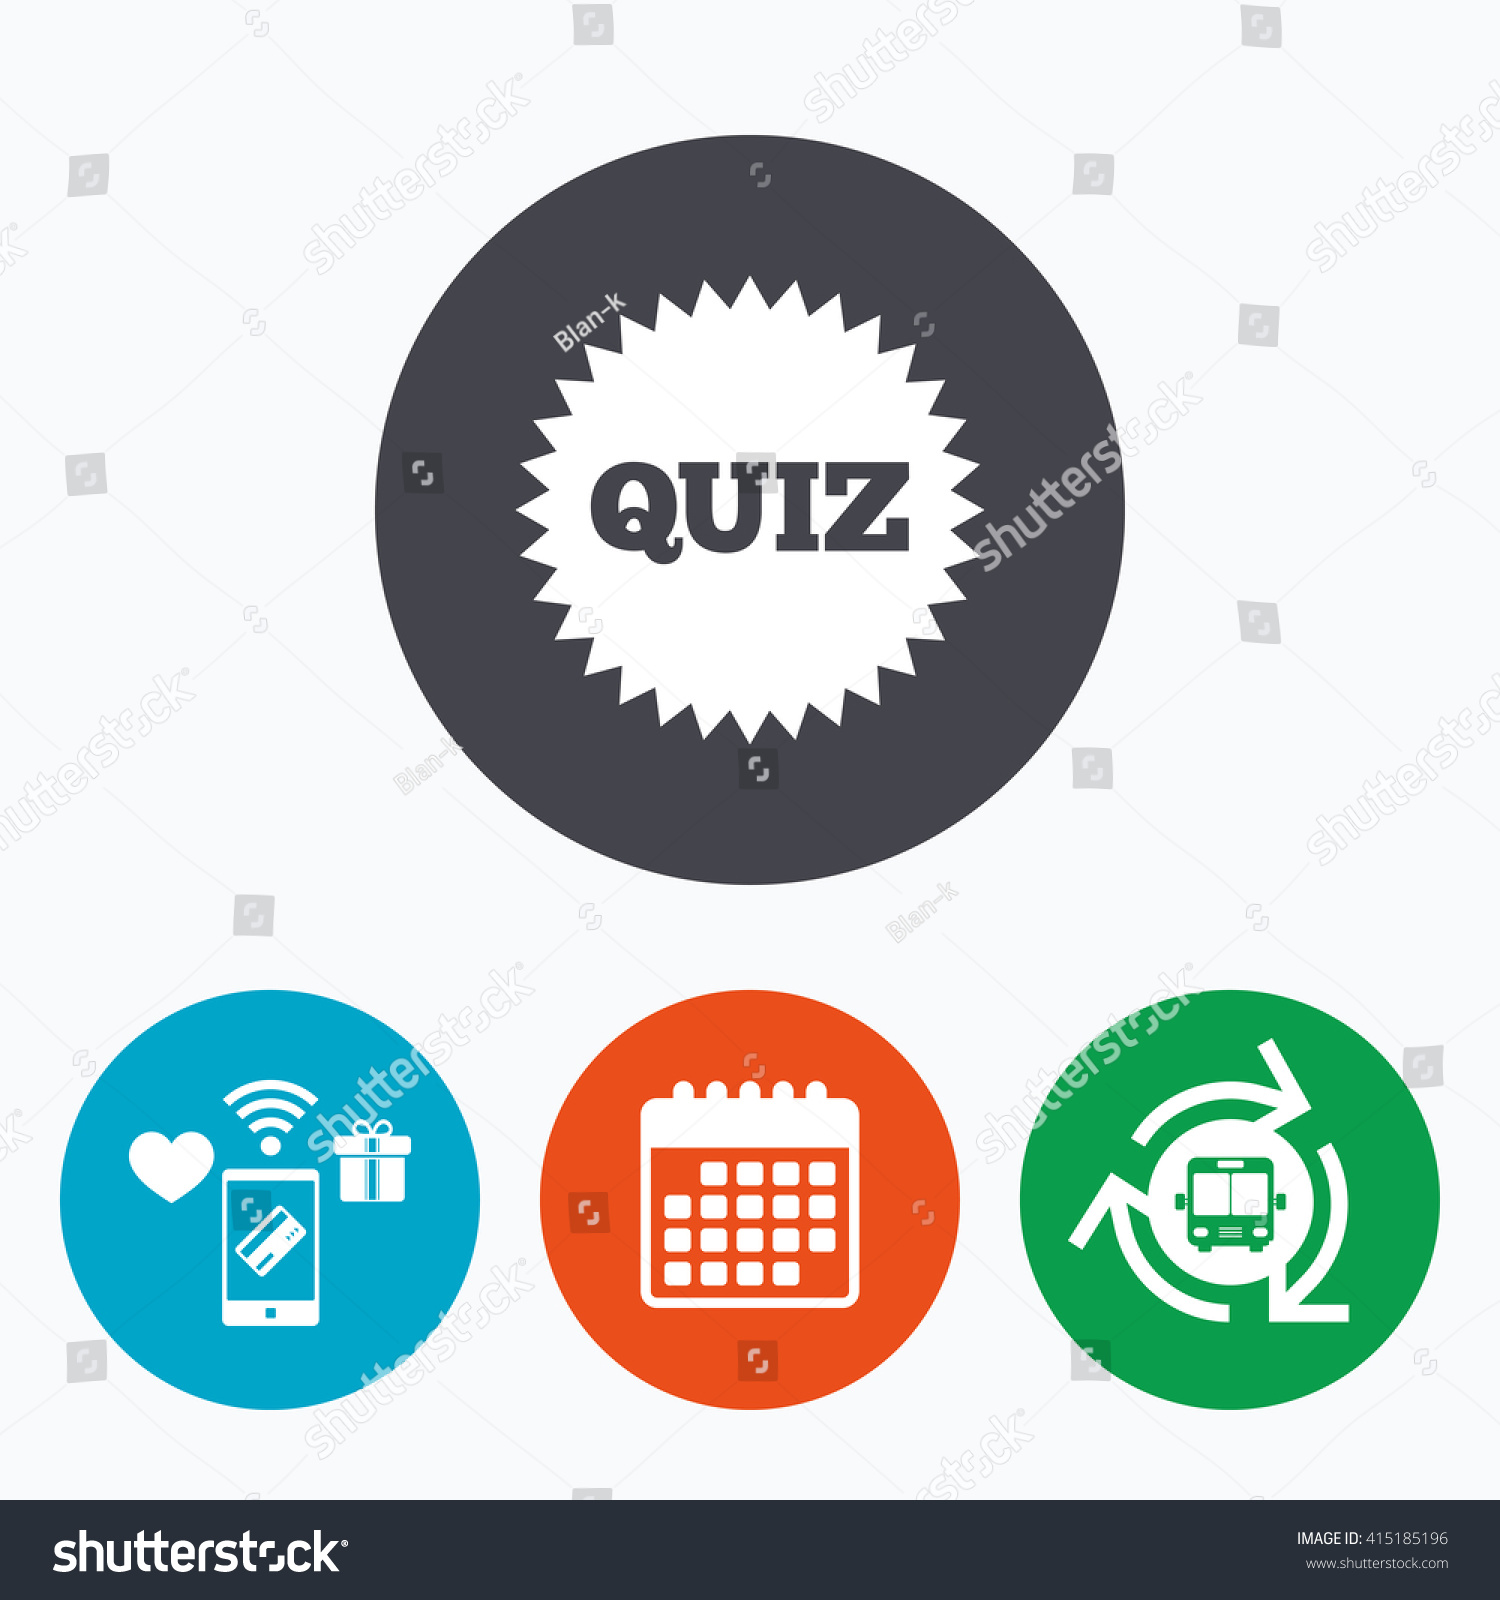 quiz star sign icon questions answers stock vector  quiz star sign icon questions and answers game symbol mobile payments calendar and